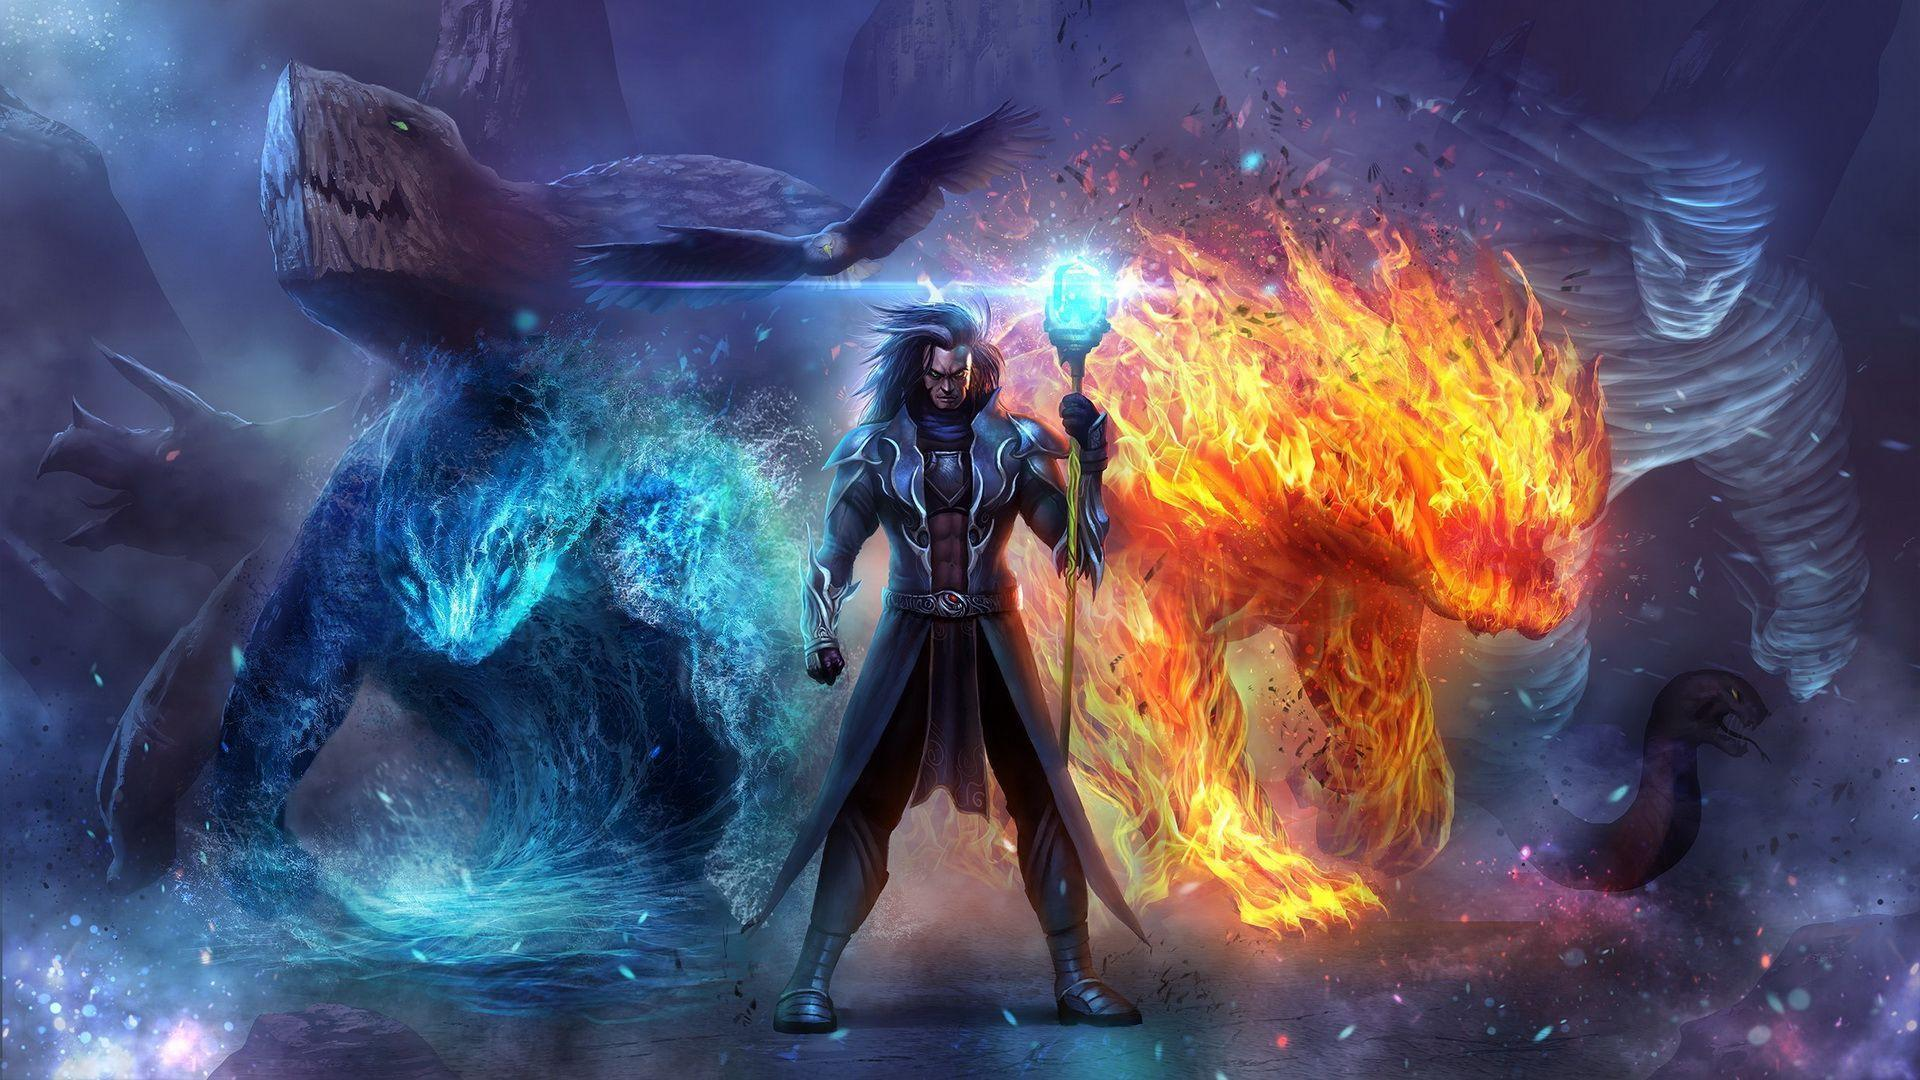 HD Wizard In Ice And Fire Wallpaper